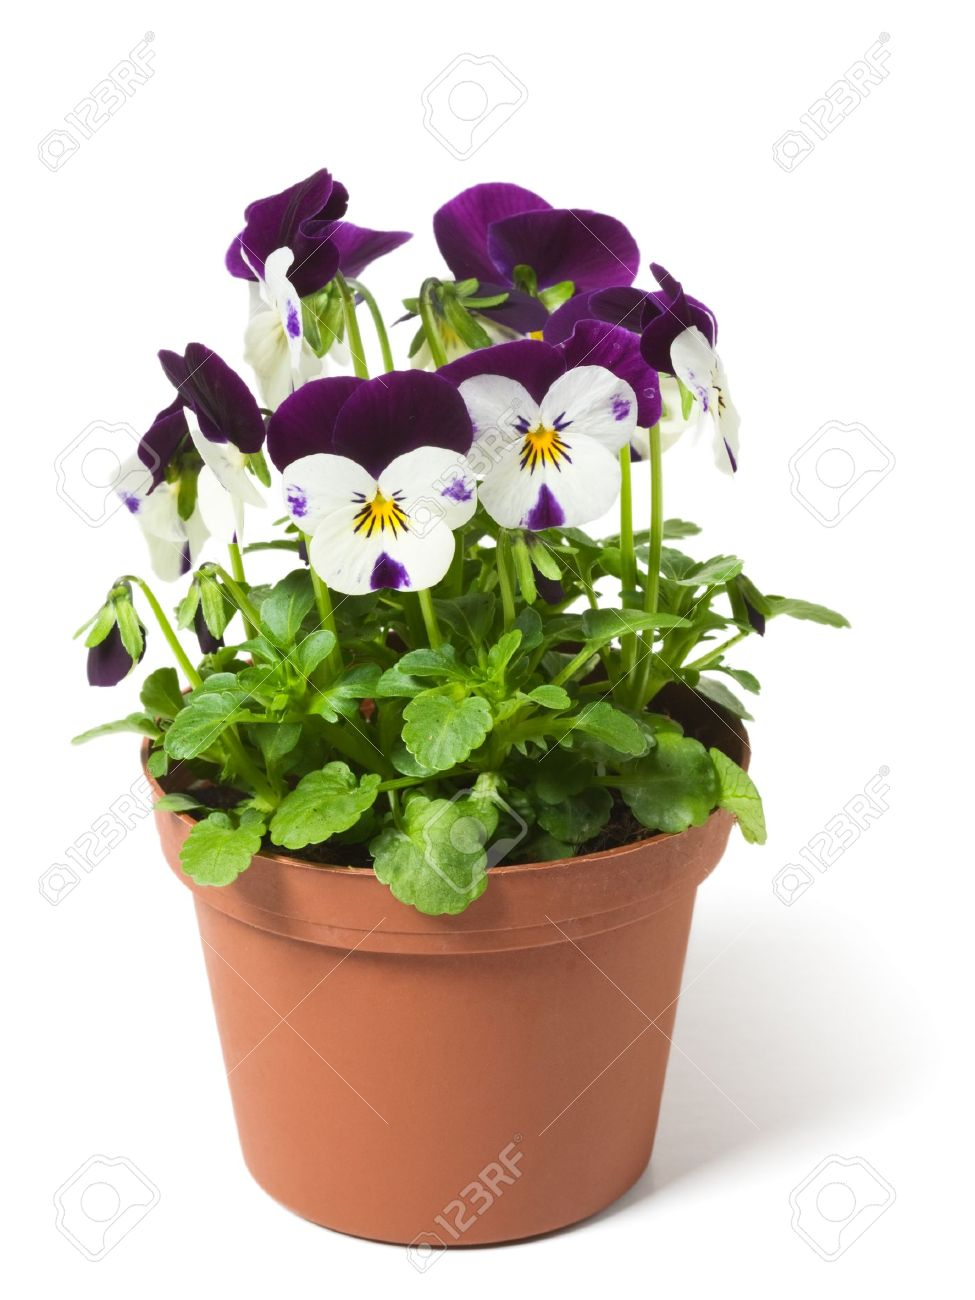 Flower pot with pansies on white background stock photo picture and flower pot with pansies on white background stock photo 9537248 mightylinksfo